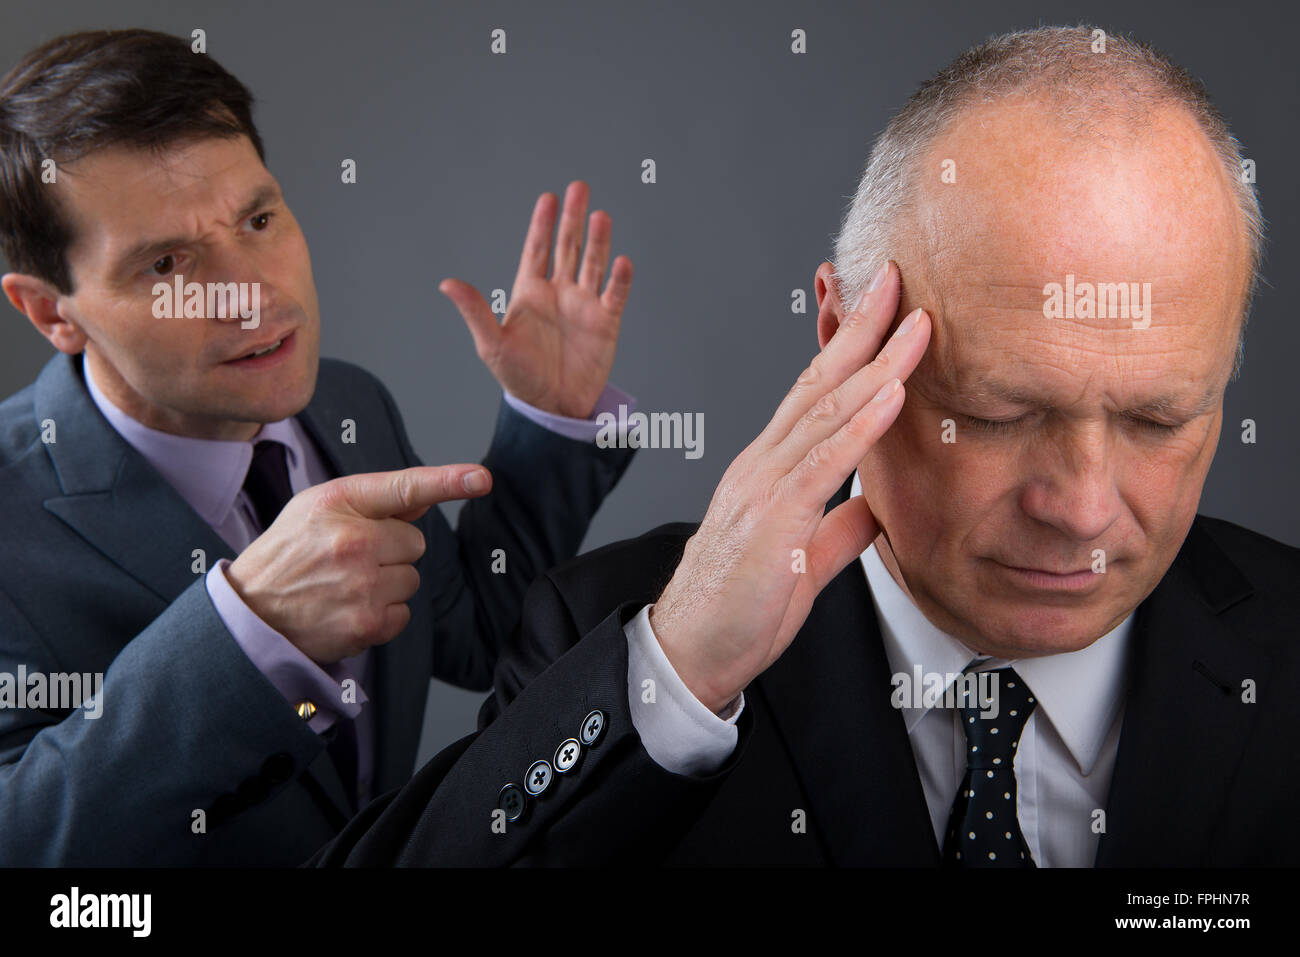 Businessman pointing his finger at a work colleague, who feels stressed. - Stock Image